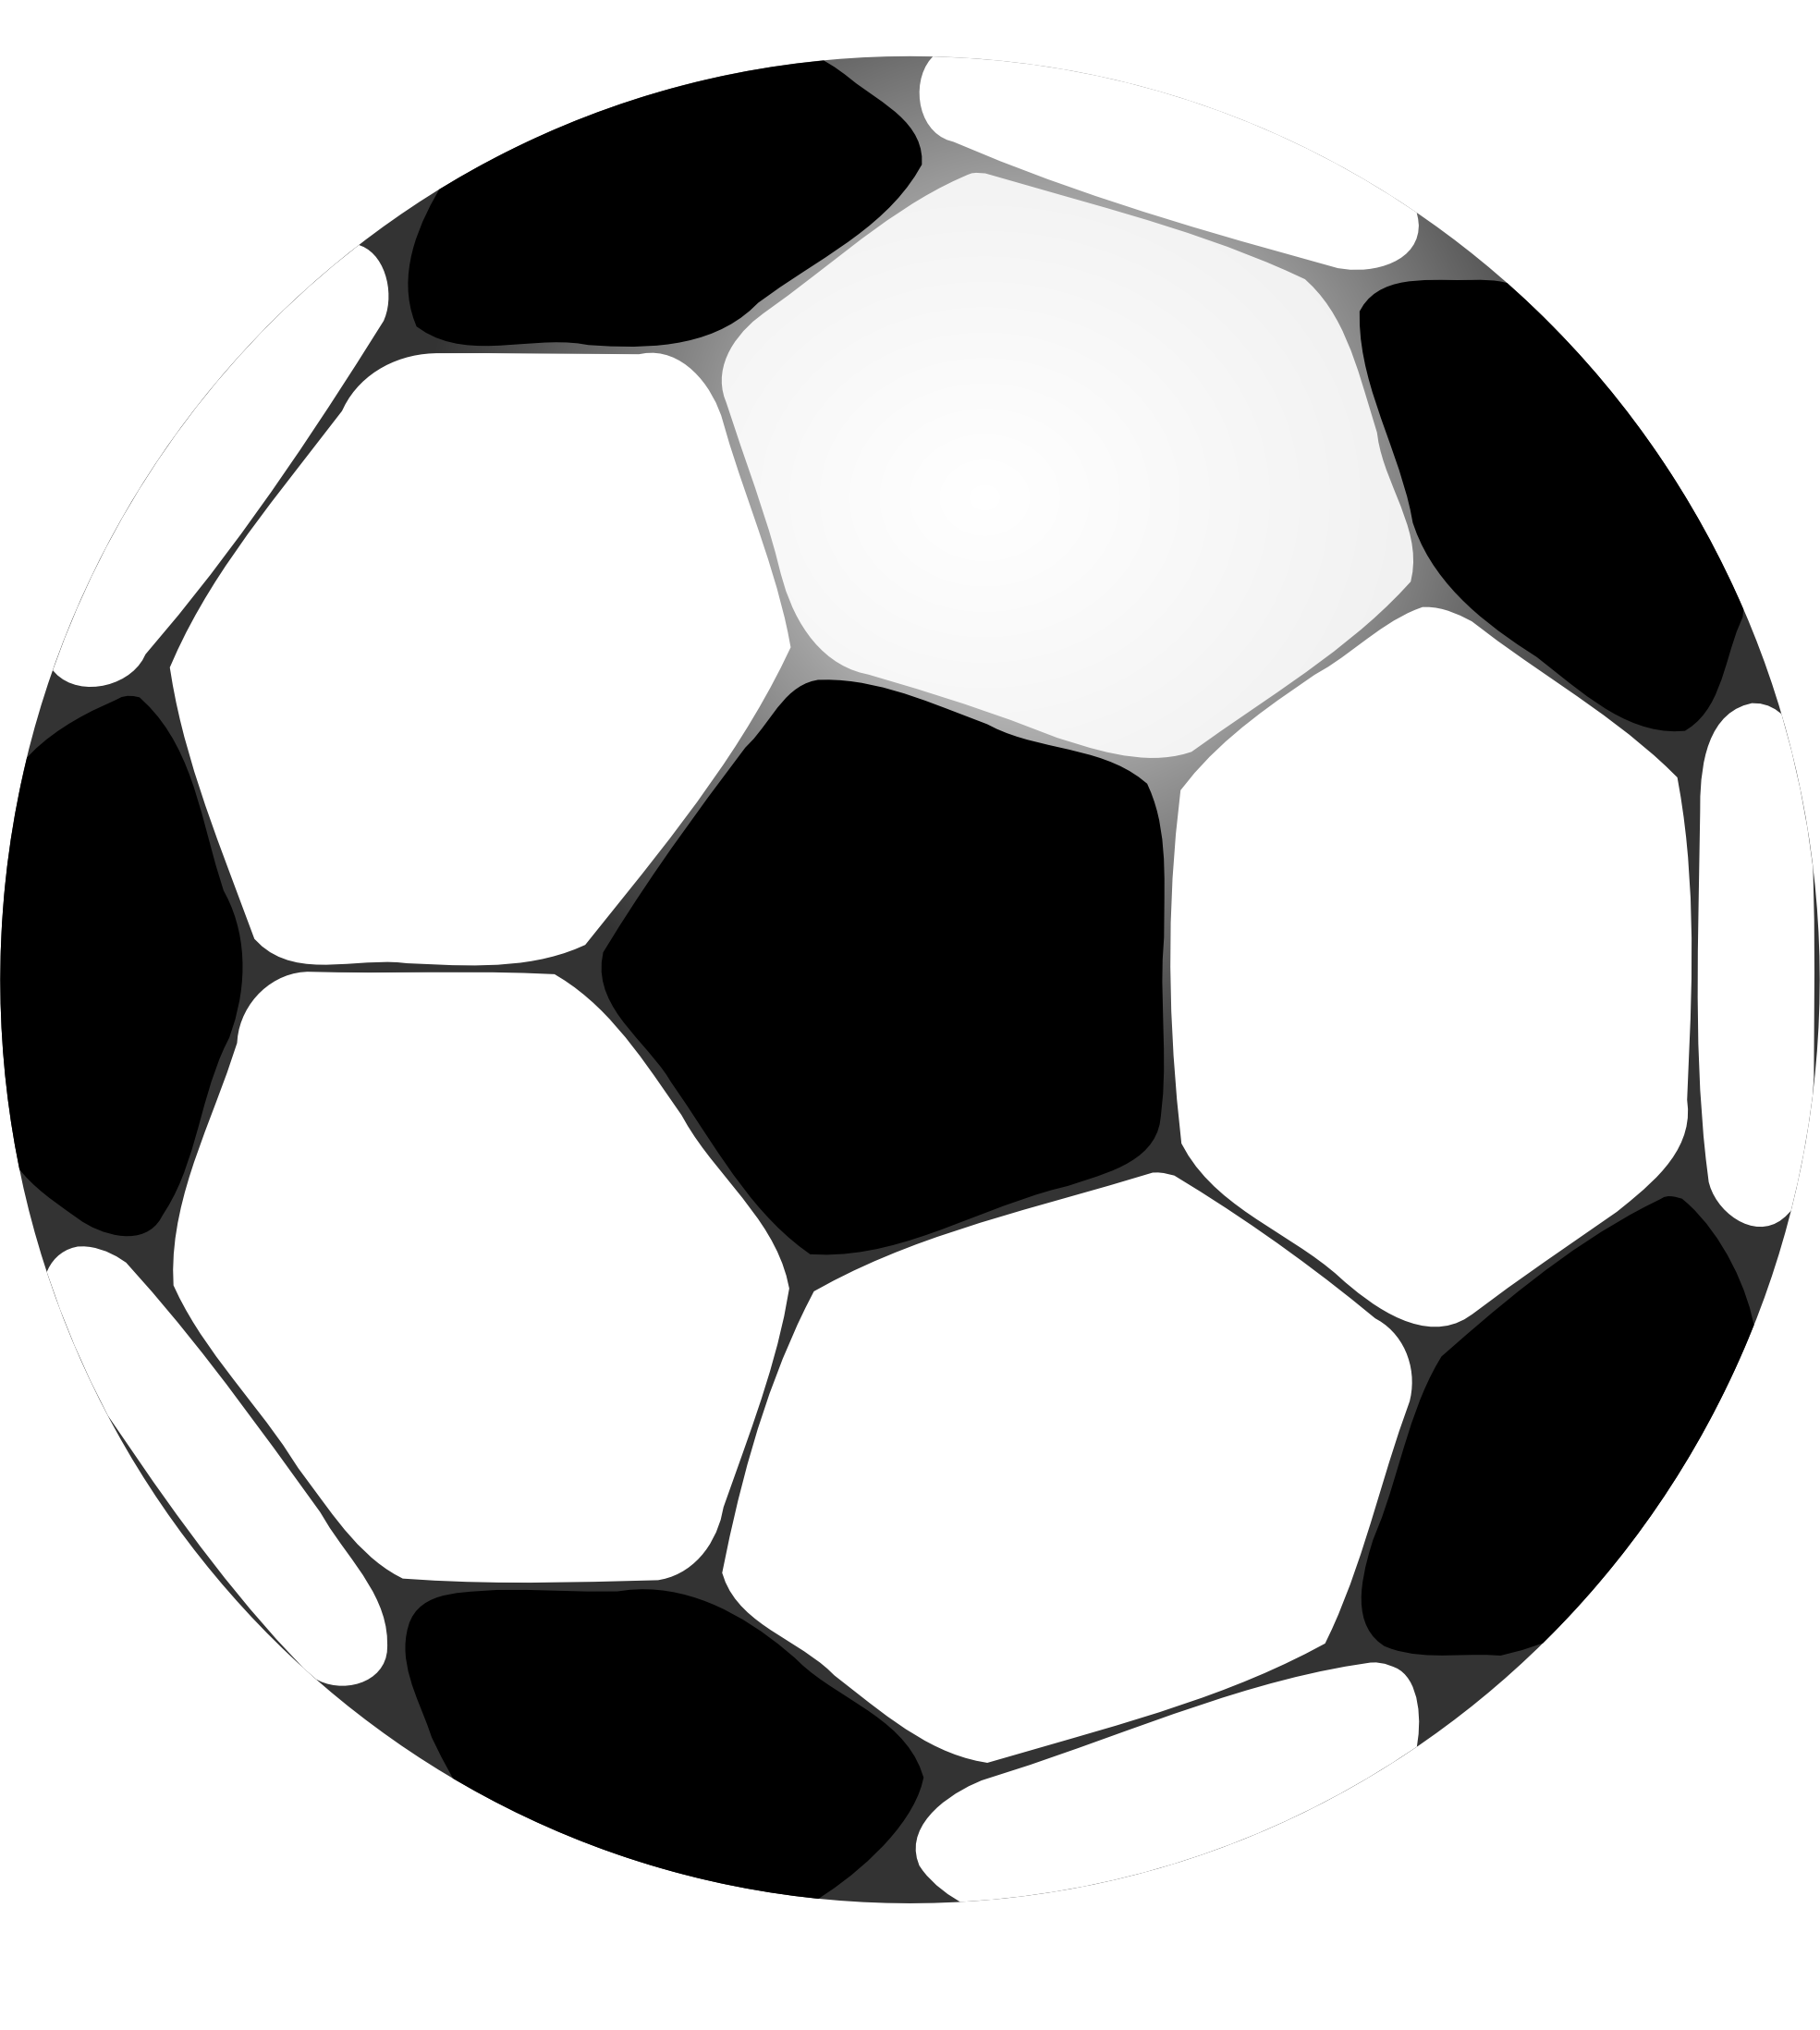 Soccer Ball Vector - Cliparts.co